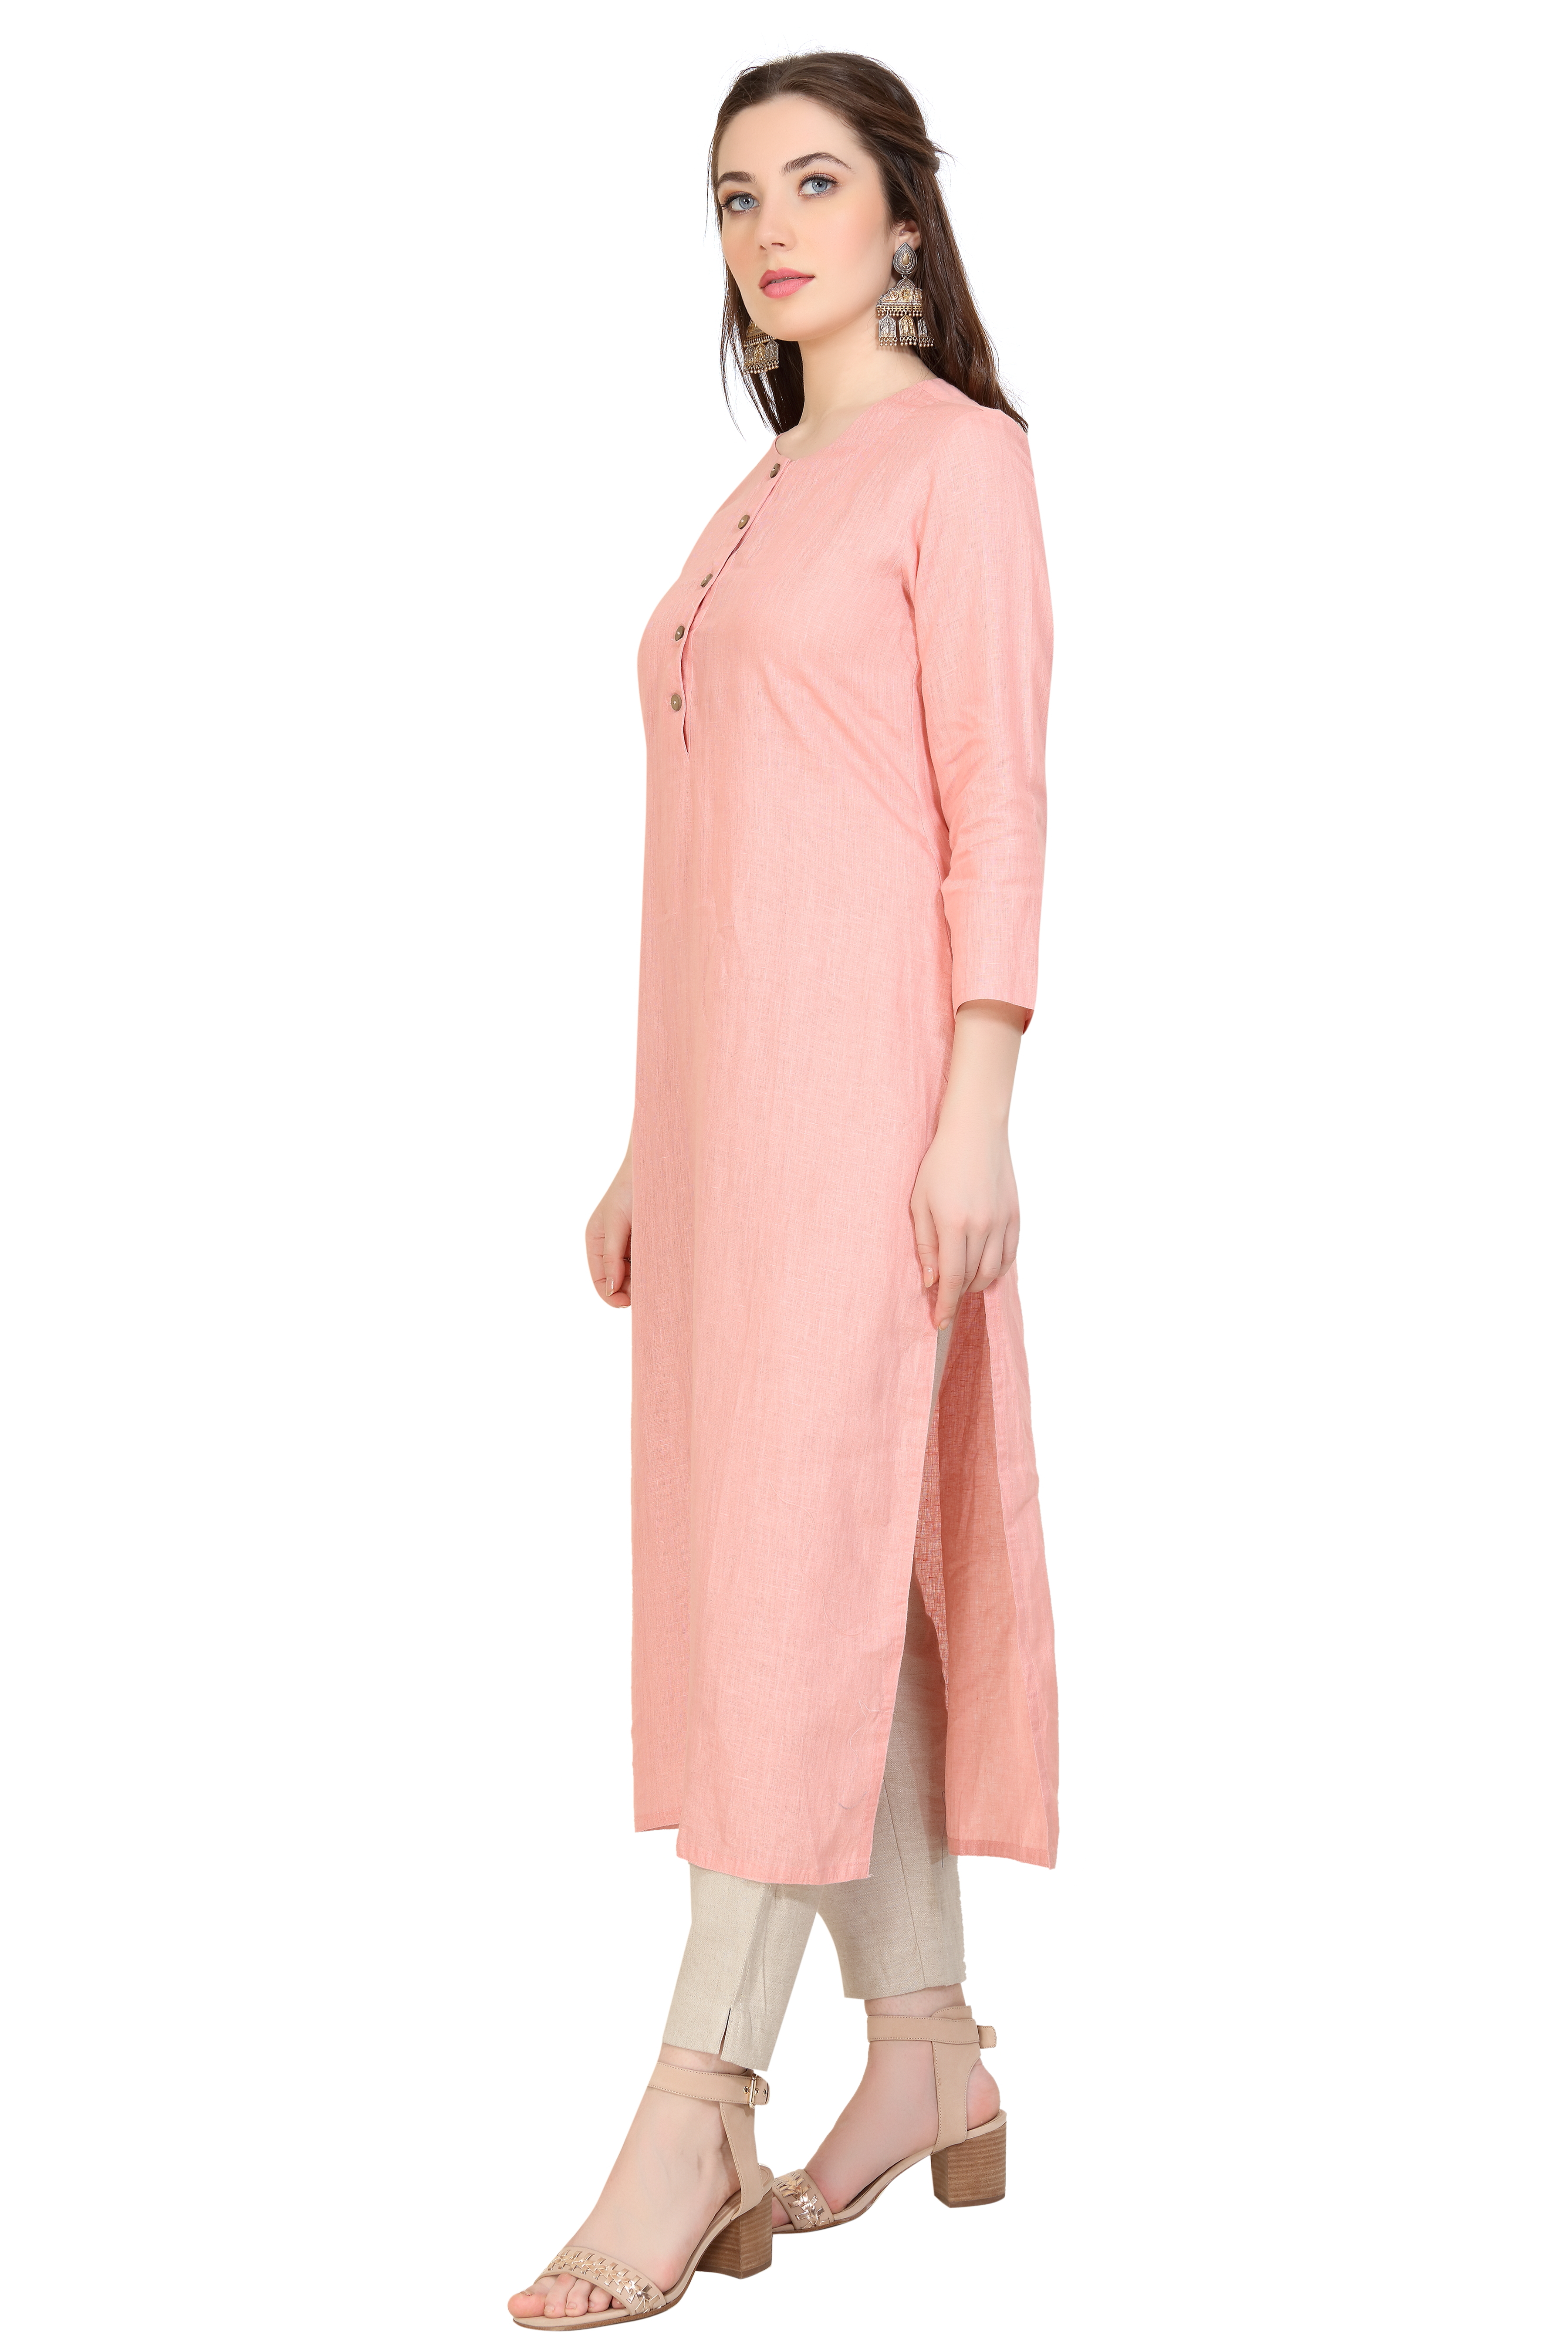 150249 Solid Carrot Straight Linen Tunic XS - Carrot (L,Carrot)